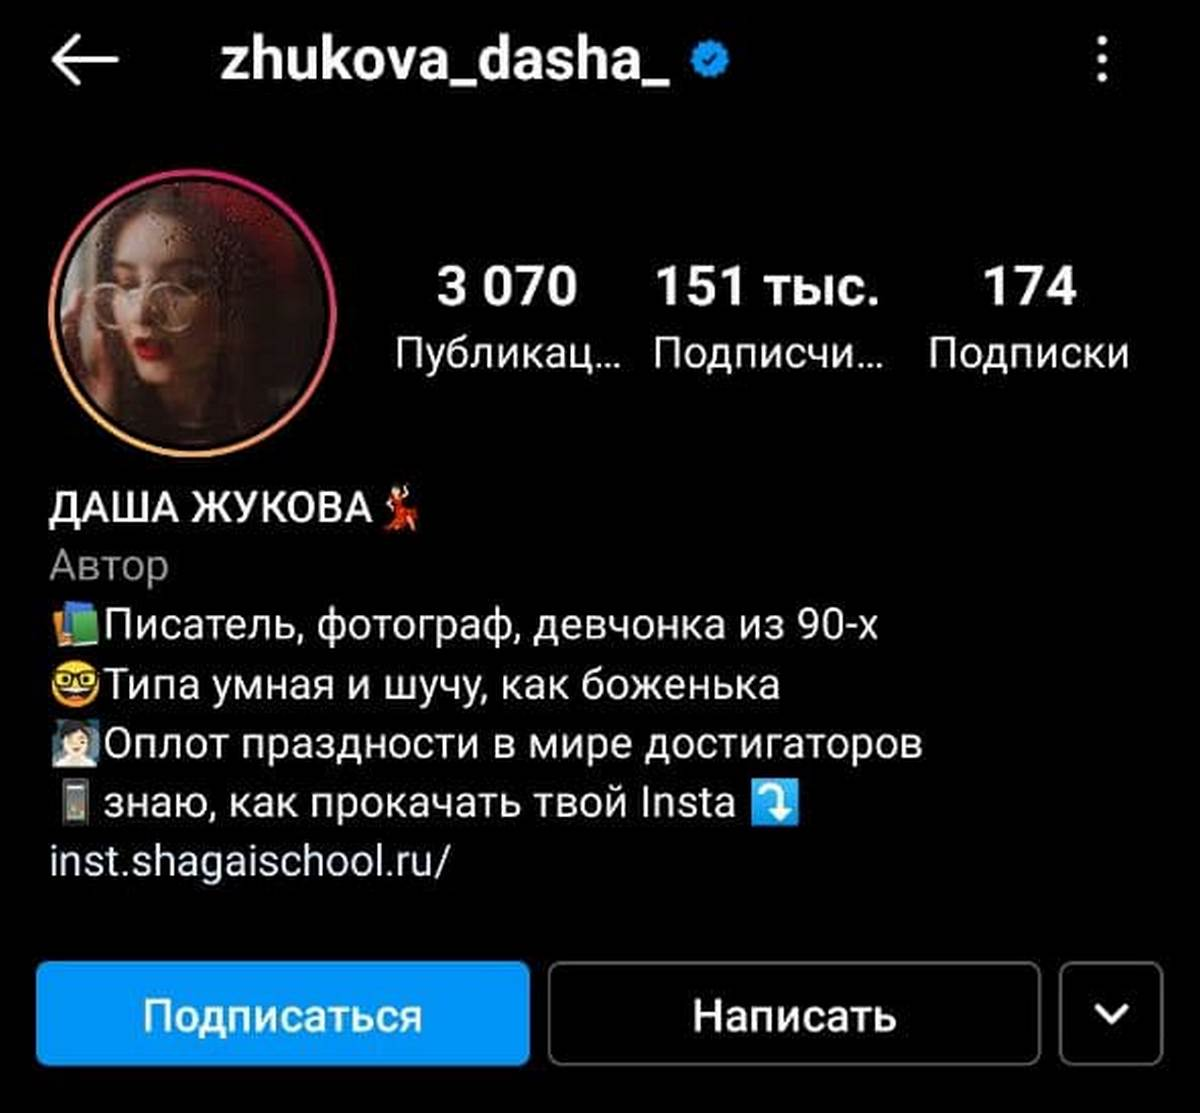 Funny Instagram profile header